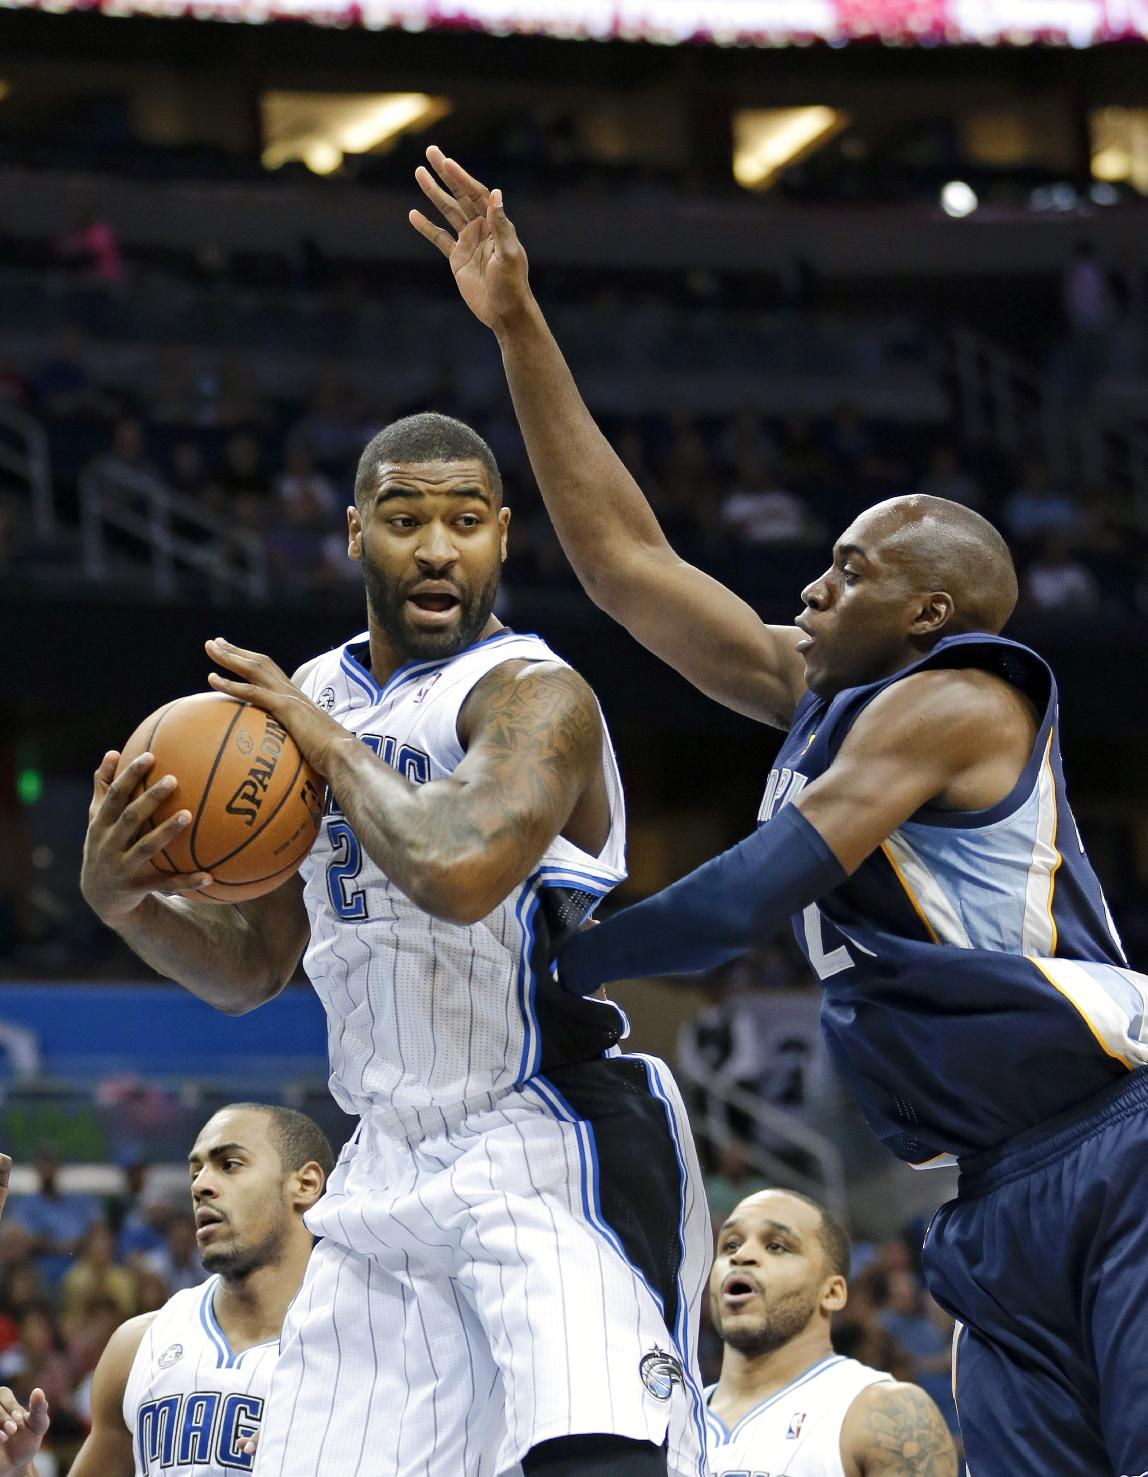 Orlando Magic's Kyle O'Quinn, left, grabs a rebound in front of Memphis Grizzlies' Quincy Pondexter, right, during the first half of an NBA preseason basketball game in Orlando, Fla., Friday, Oct. 18, 2013